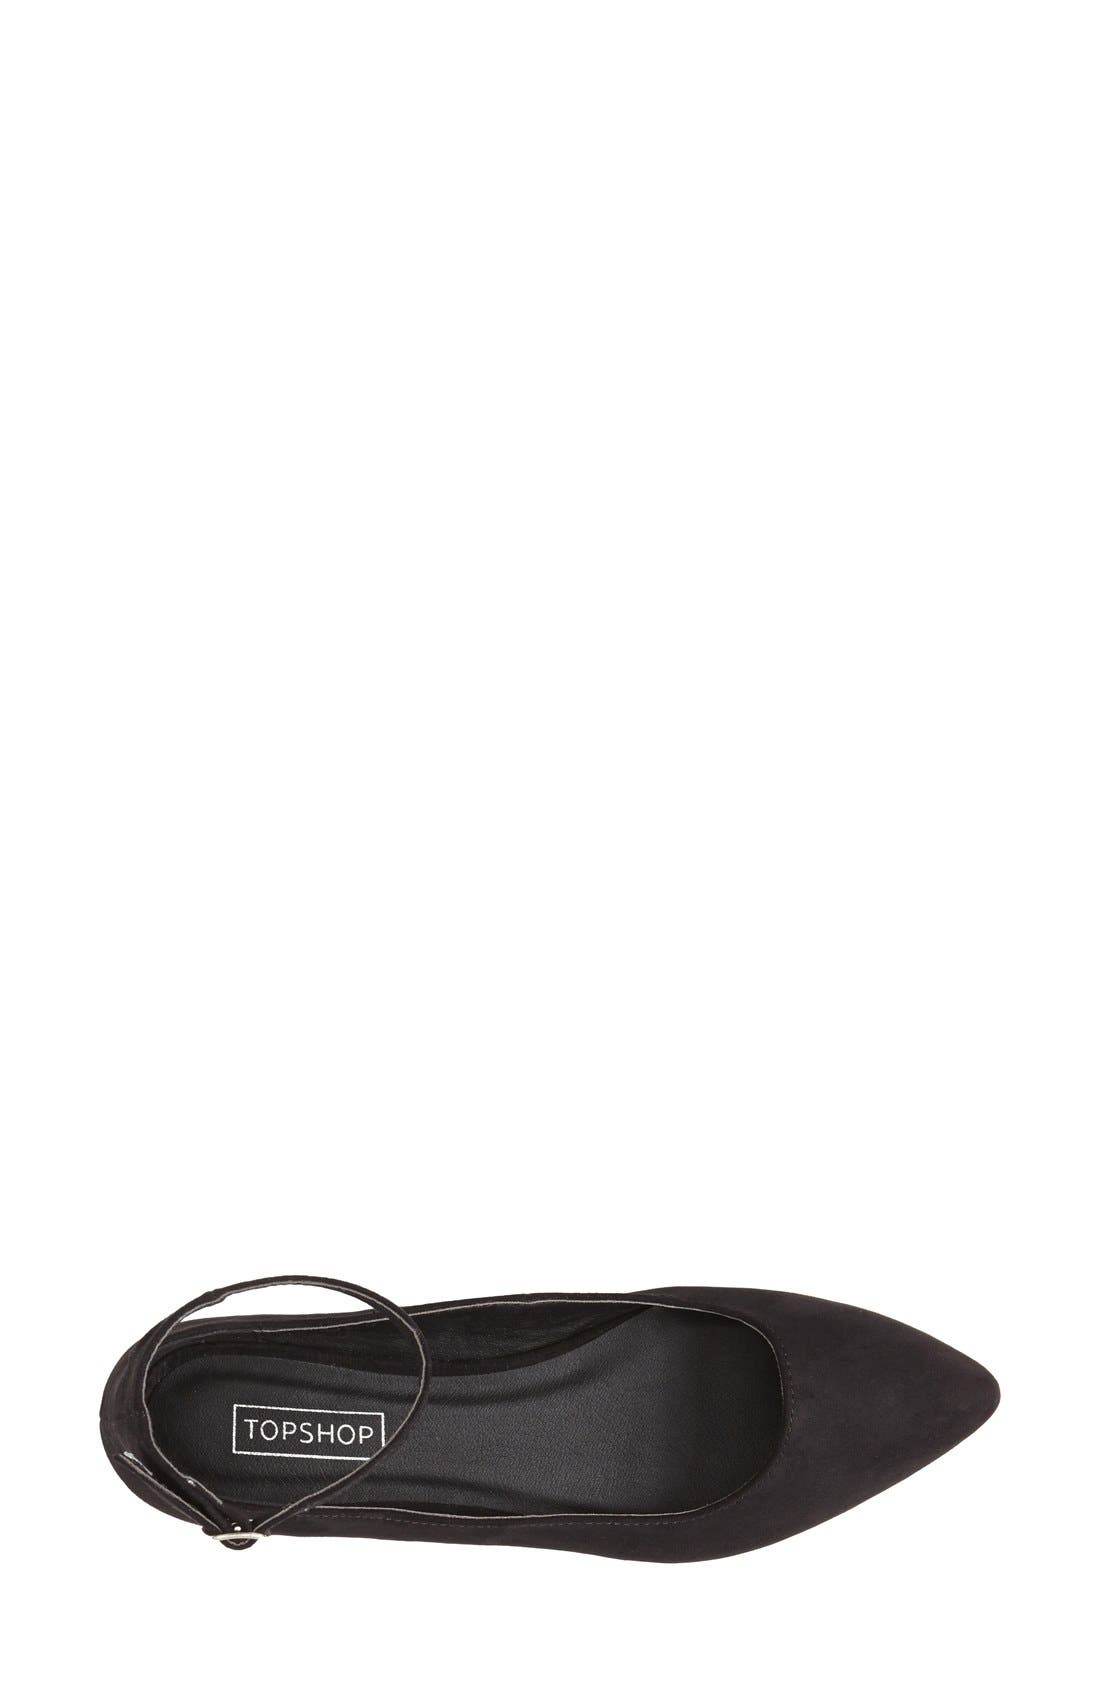 Alternate Image 3  - Topshop 'Saloon' Ankle Strap Flat (Women)